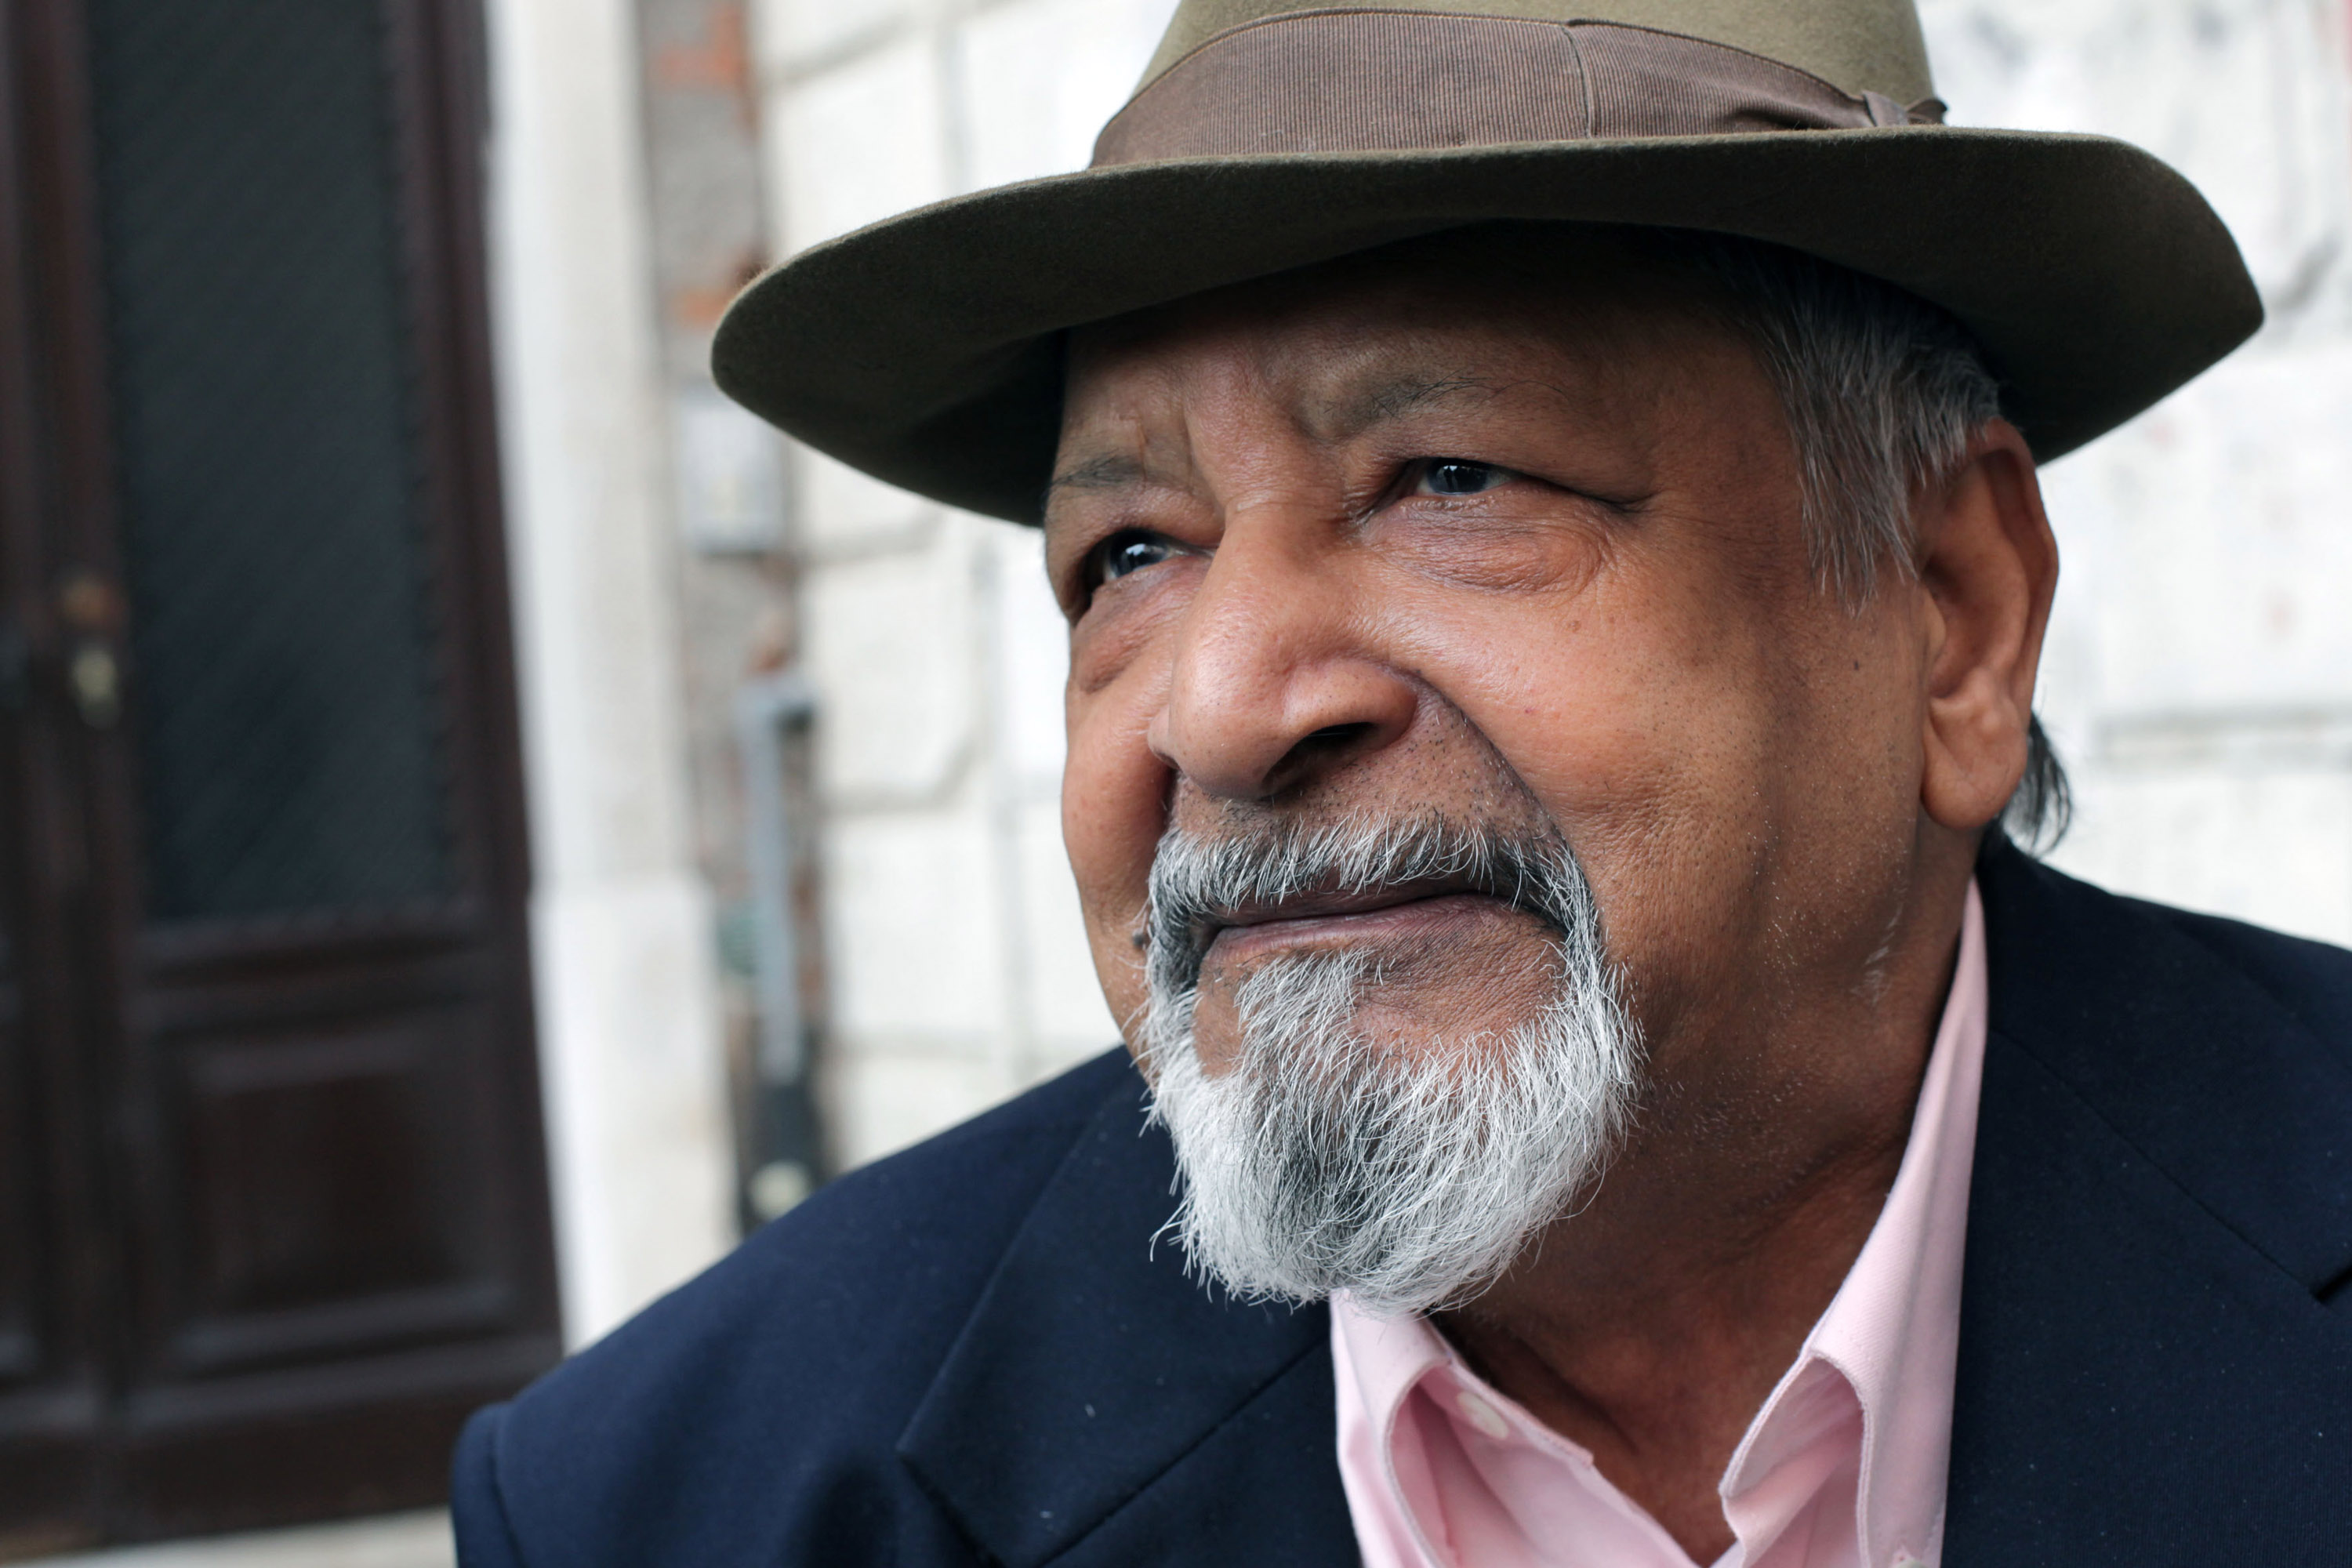 Trinidadian-British writer and 2001 Nobel Prize winner Sir Vidiadhar Surajprasad Naipaul poses for a portrait session during 'Incroci di Civilta', Venice Literary Festival on April 14, 2011 in Venice, Italy.